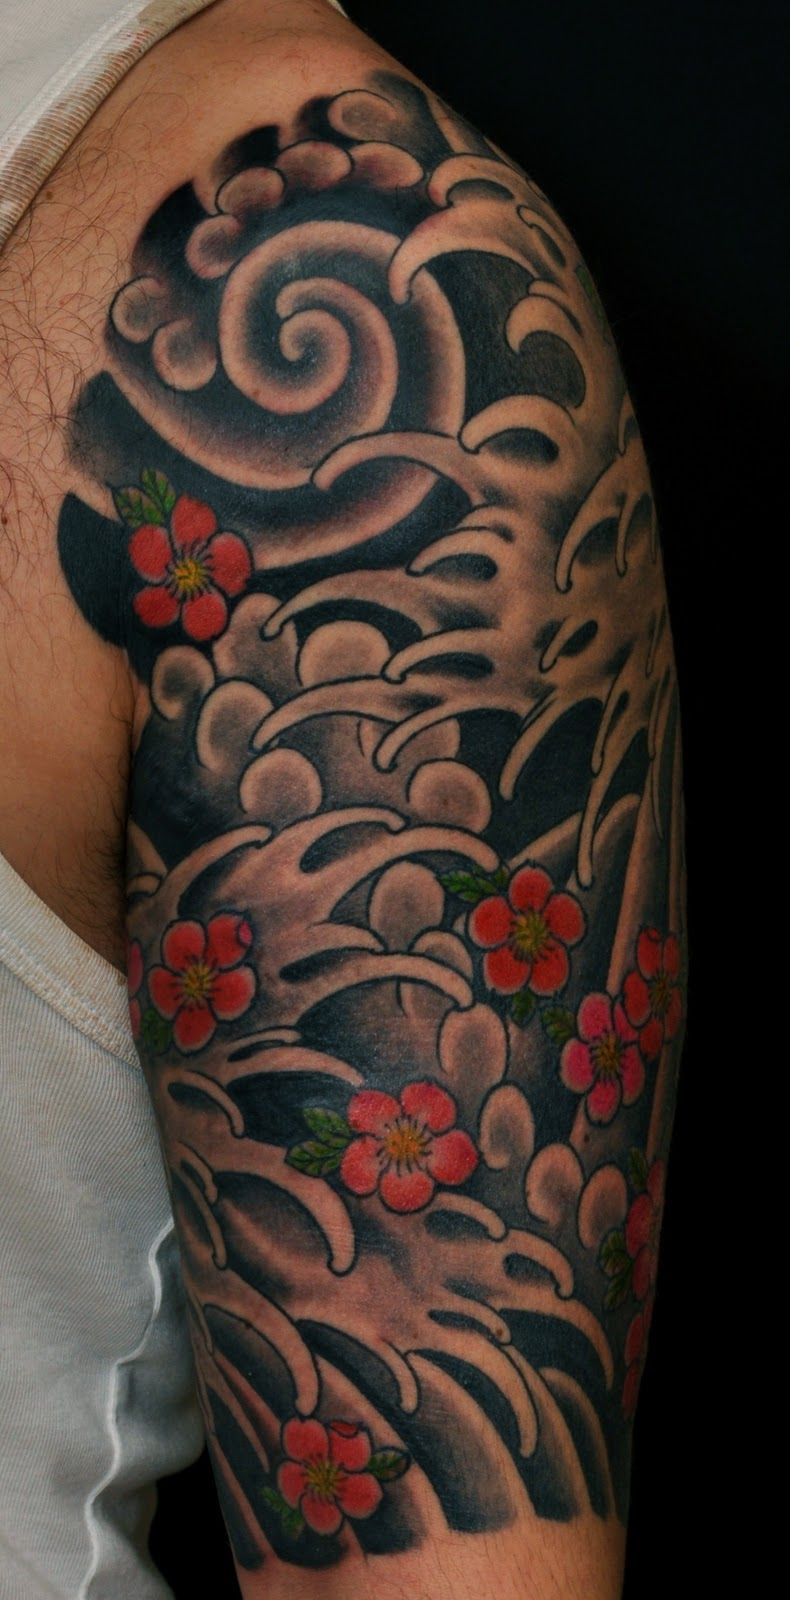 Traditional Japanese Water Tattoo With Cherry Blossoms Japanese Wave Tattoos Wind Tattoo Japanese Tattoo